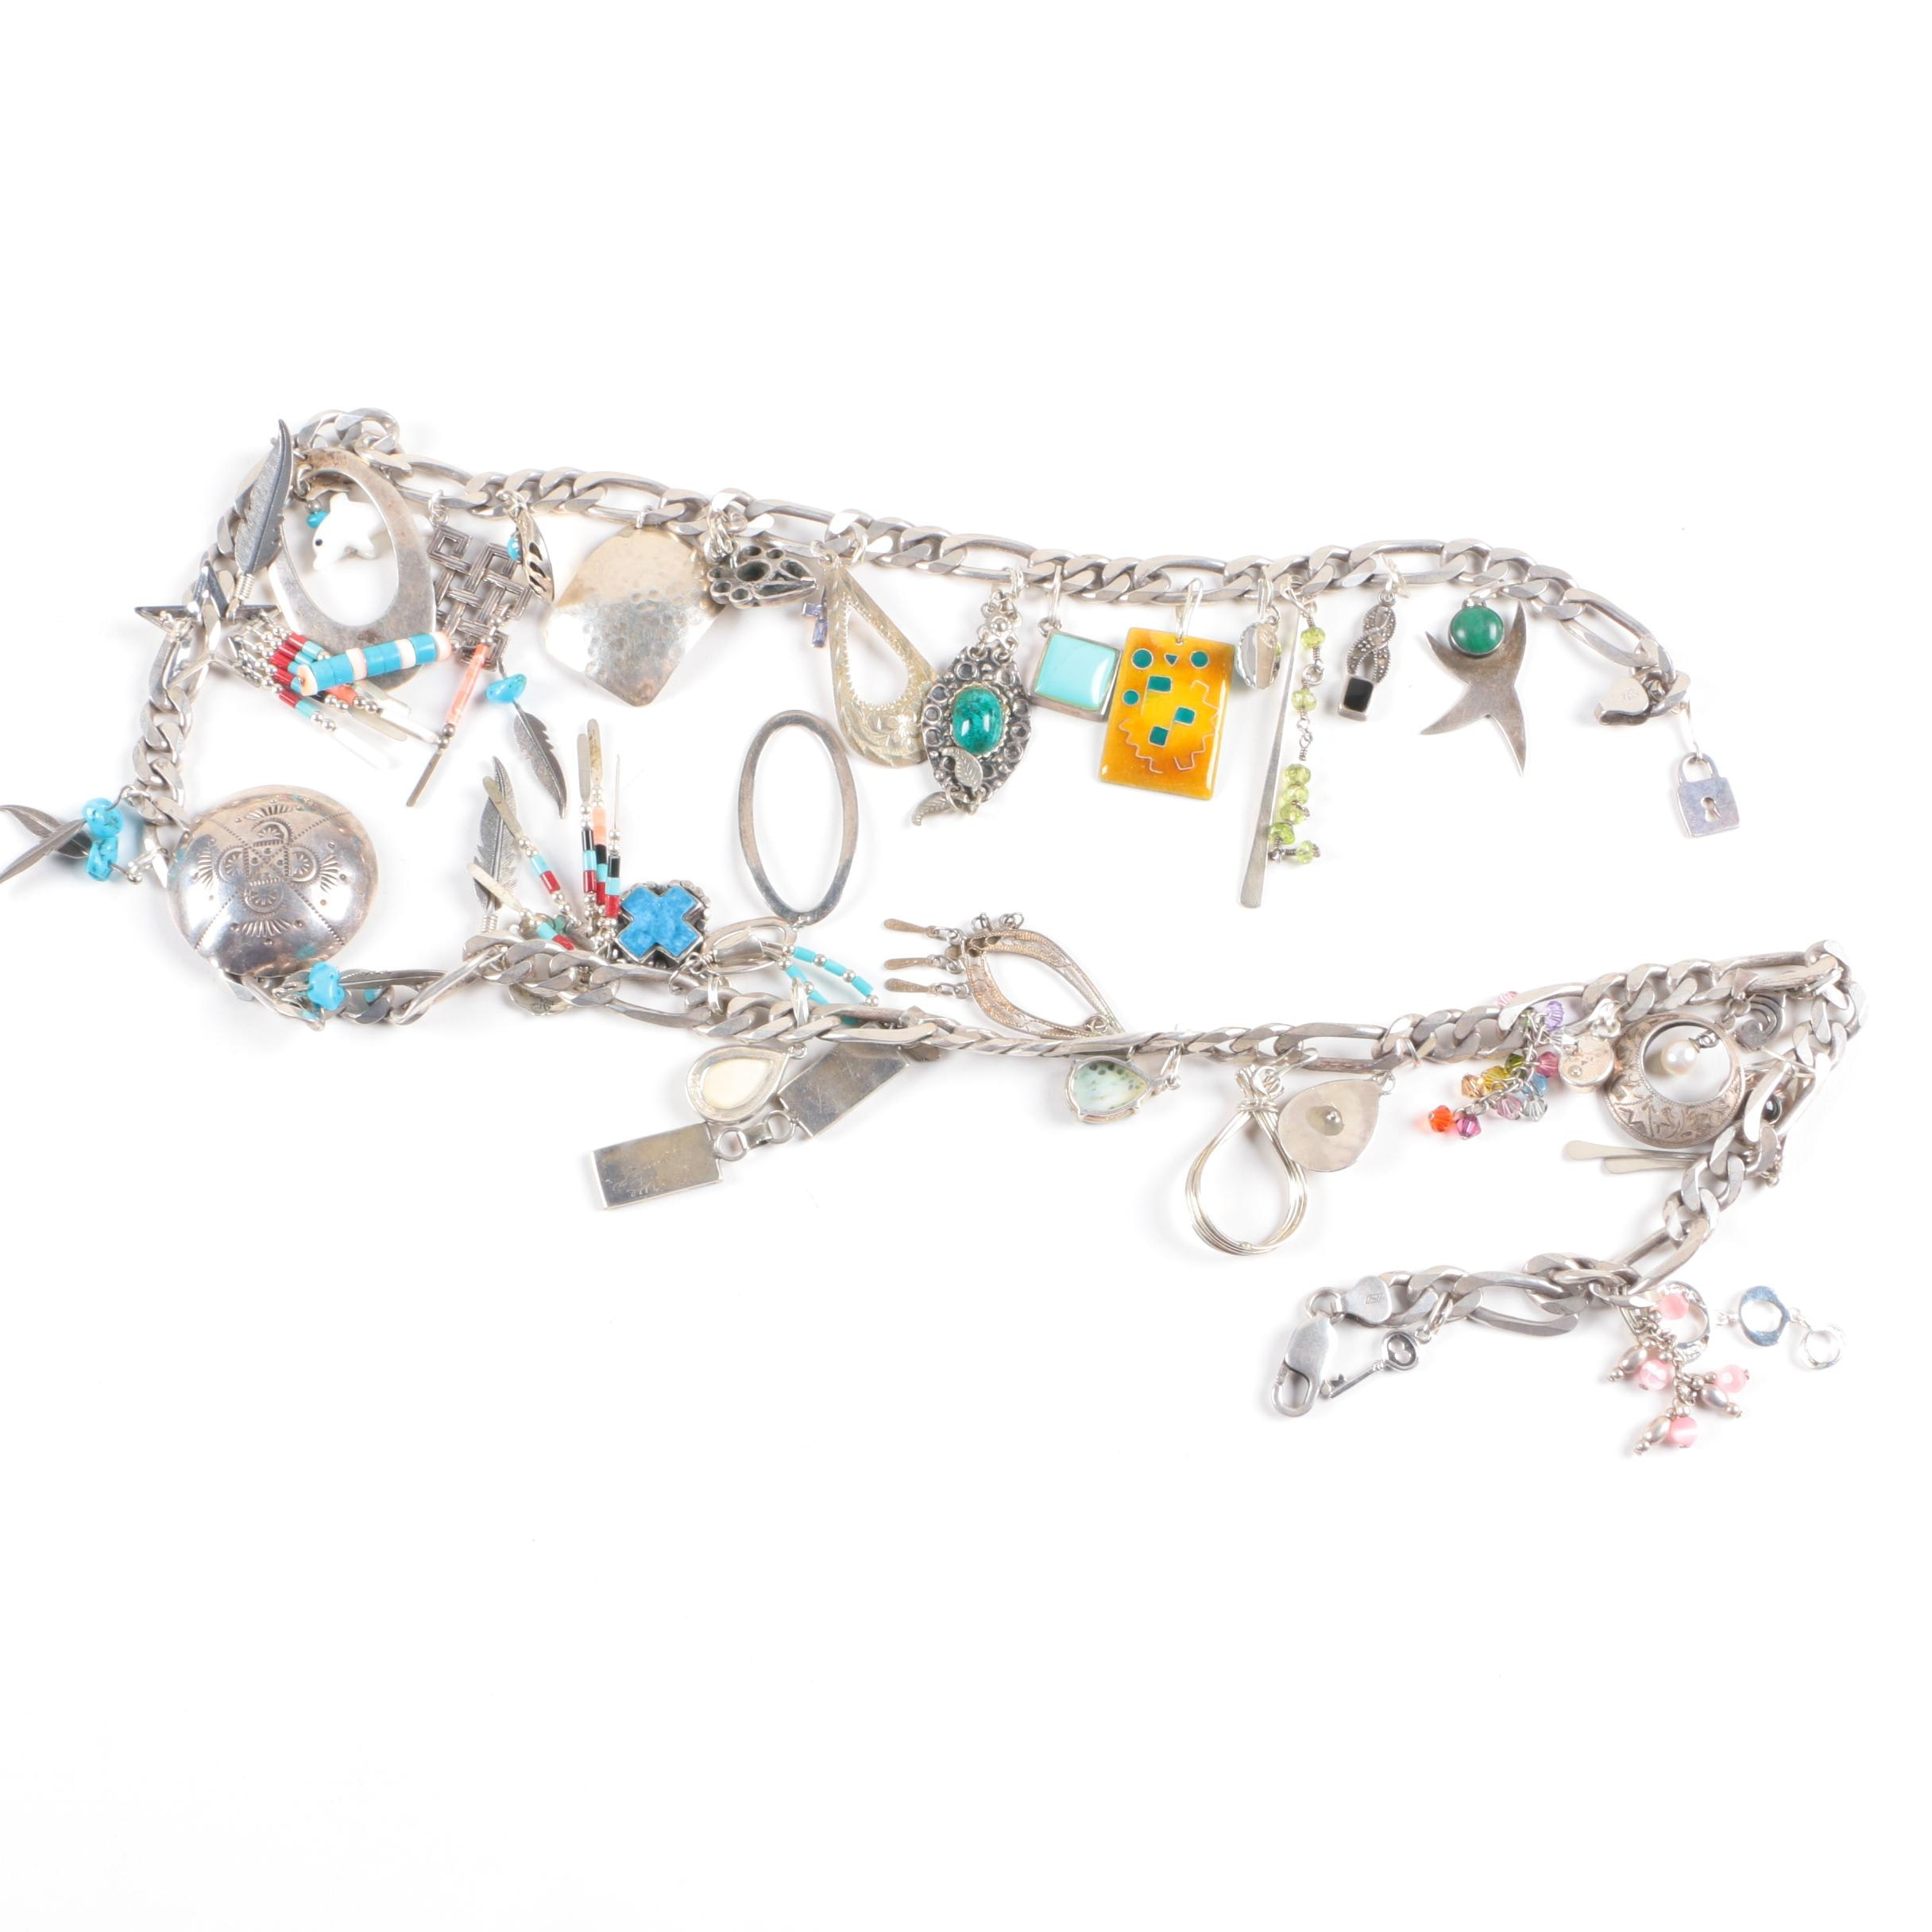 Sterling Silver Charm Necklace Including Gemstones and Abalone